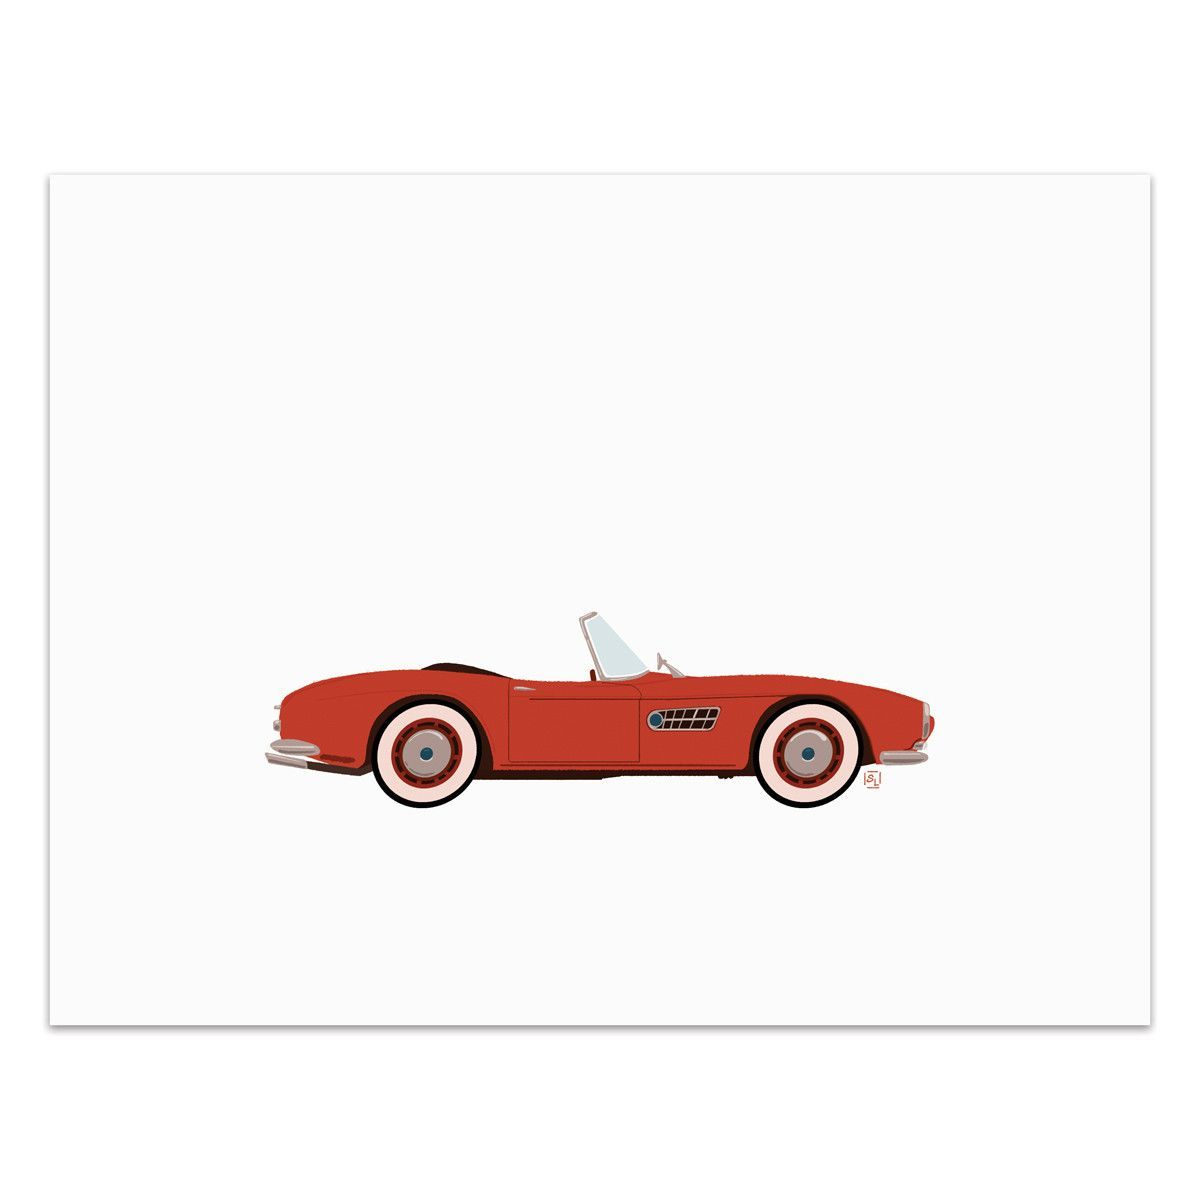 Cherry - Classic Convertible in Cherry Red - Art Print